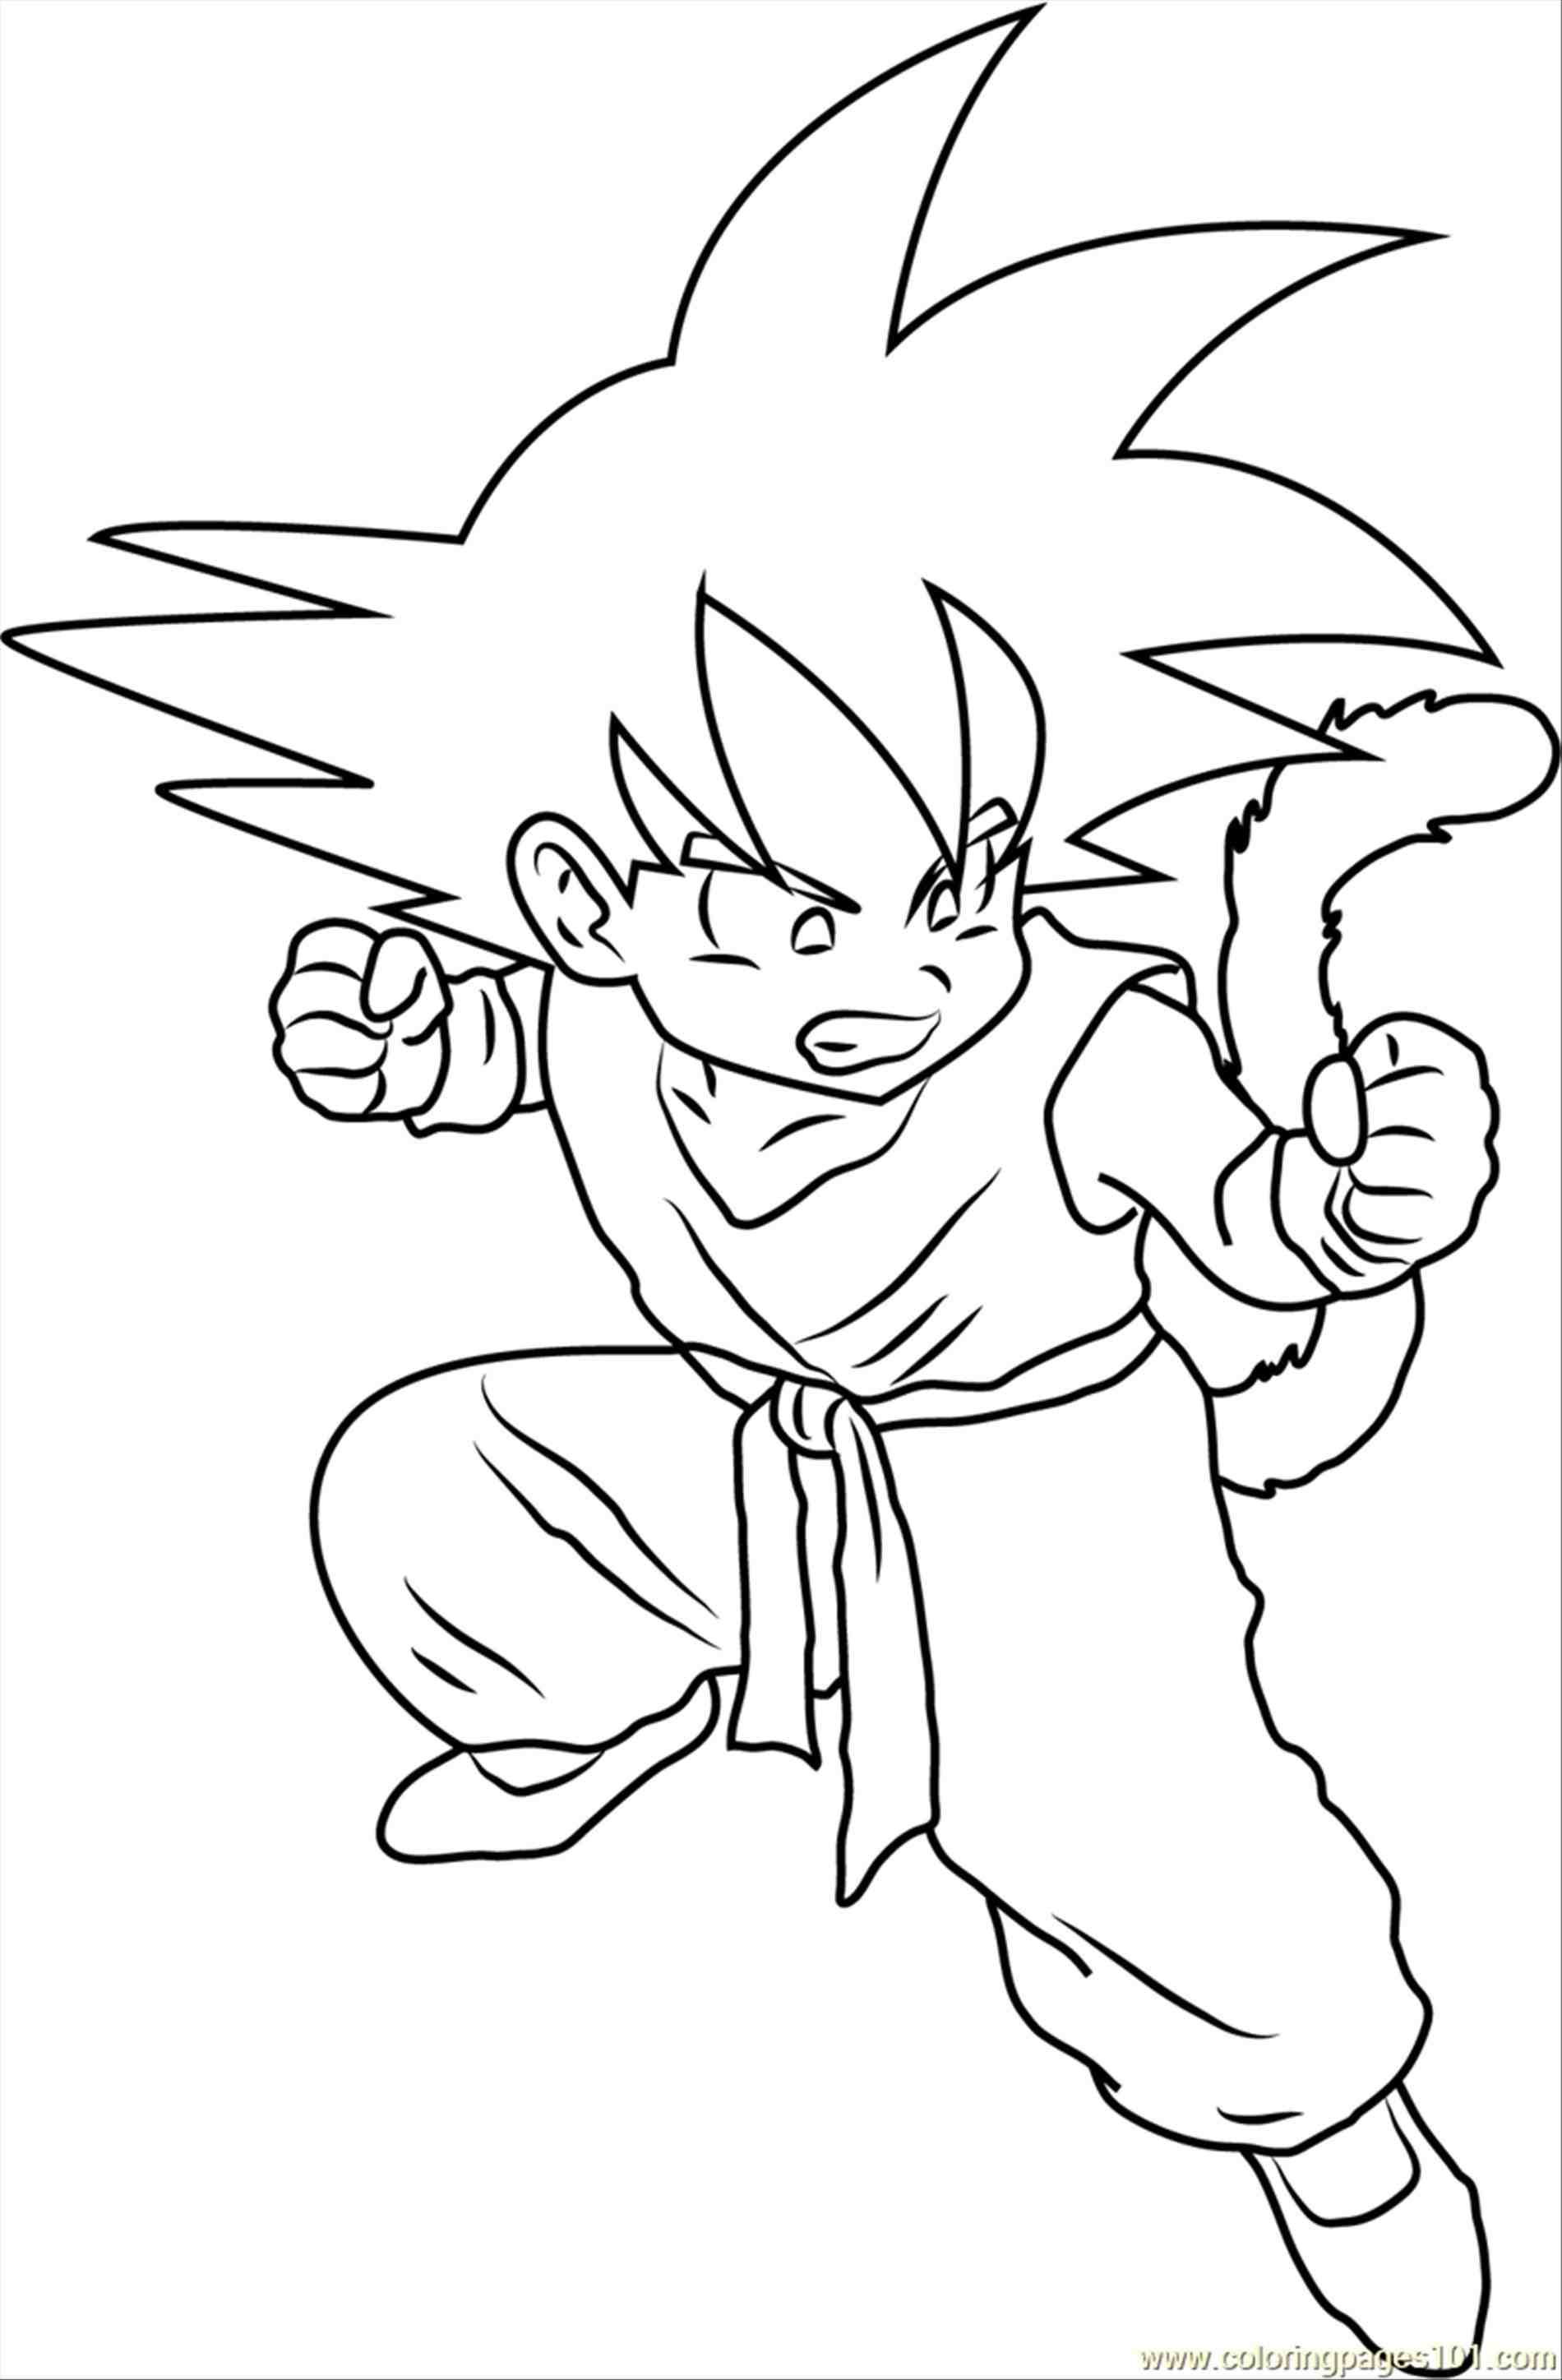 coloring pictures of goku printable goku coloring pages for kids cool2bkids of coloring goku pictures